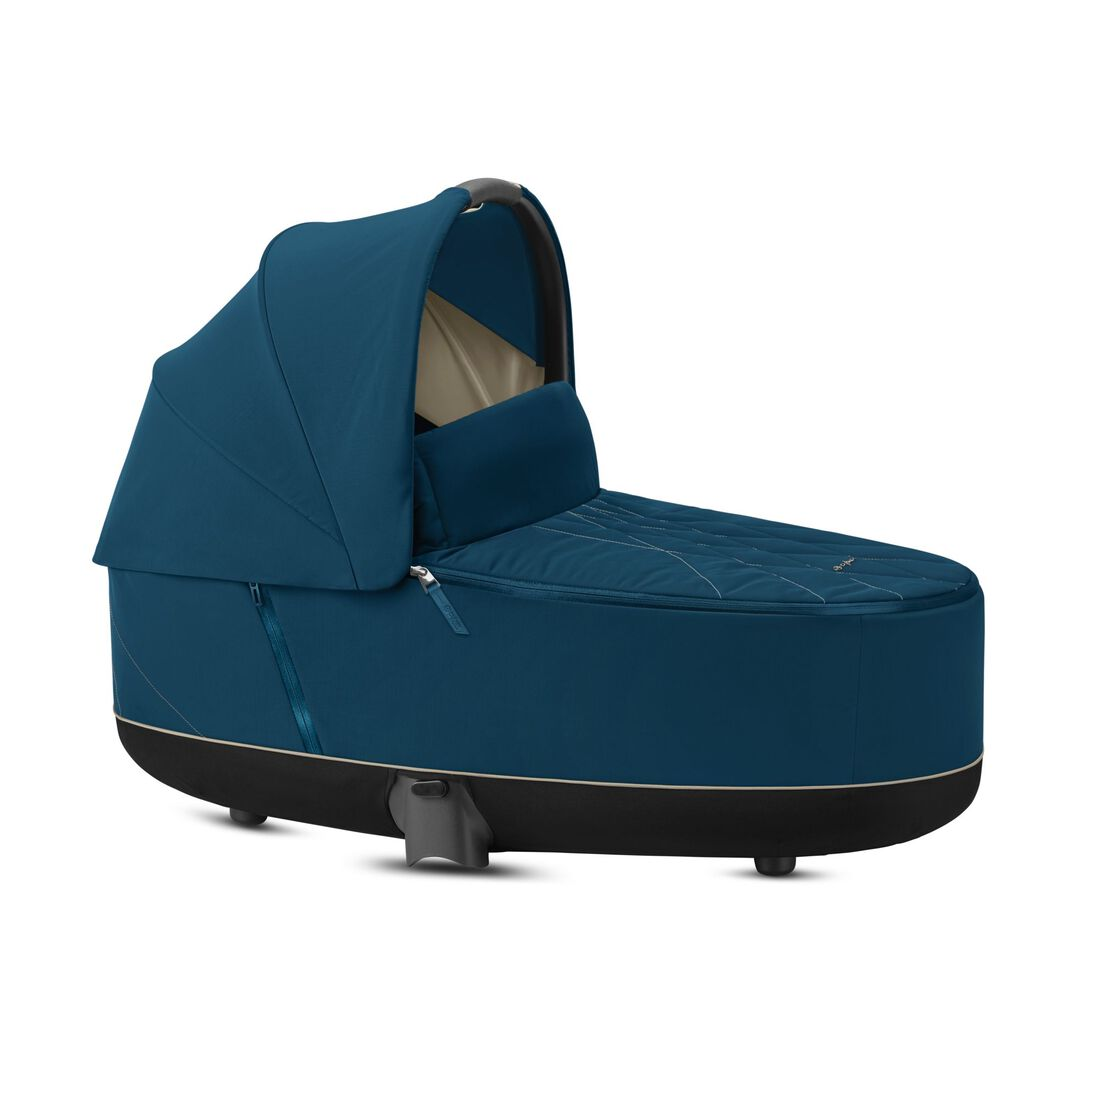 CYBEX Priam Lux Carry Cot - Mountain Blue in Mountain Blue large image number 1